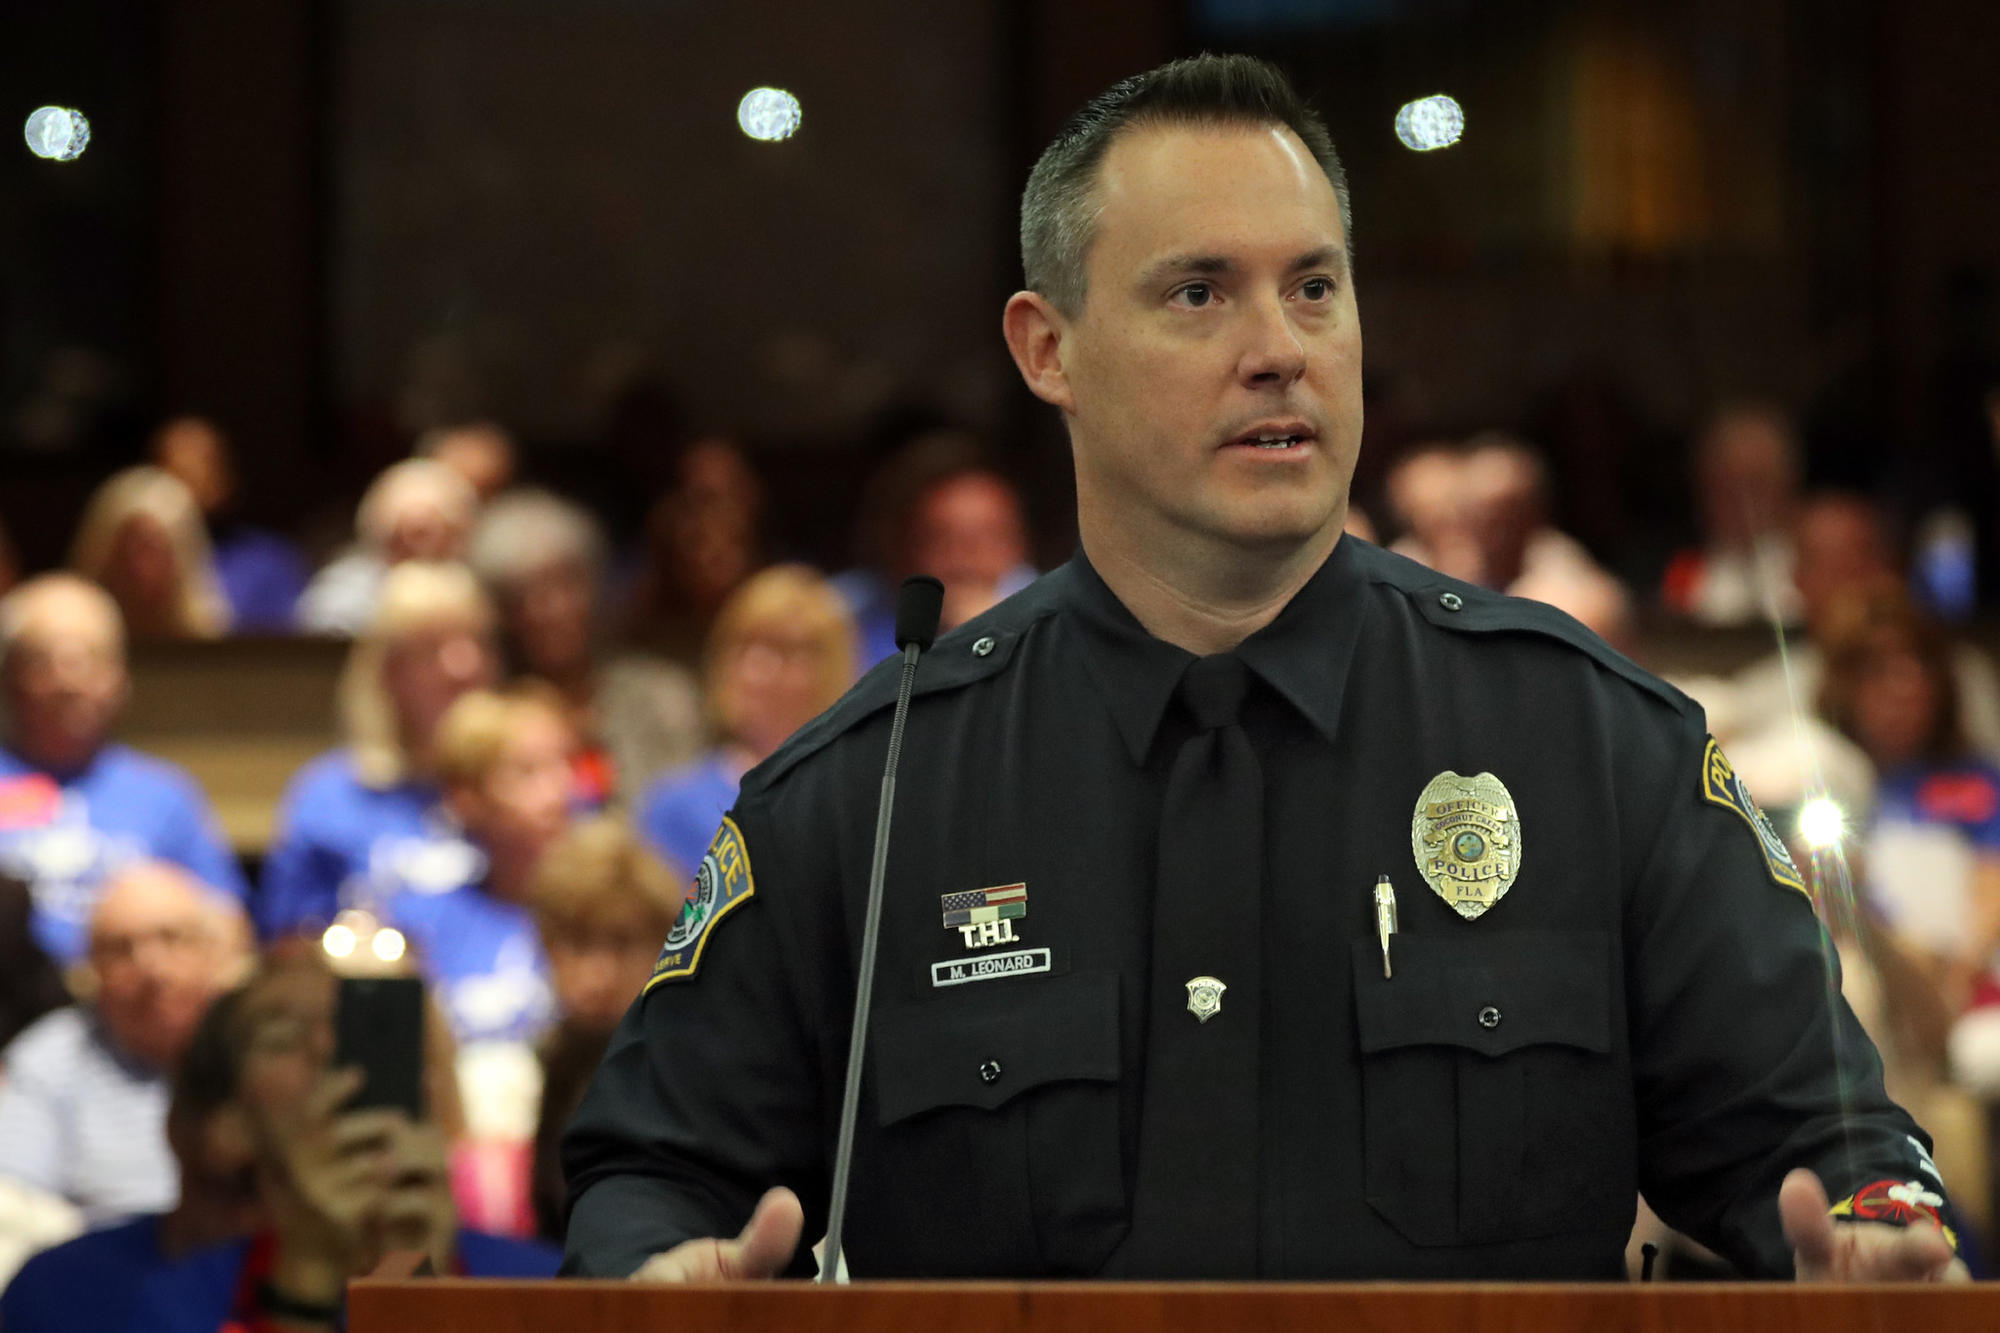 Its Not About Me Says Officer Who Caught Stoneman